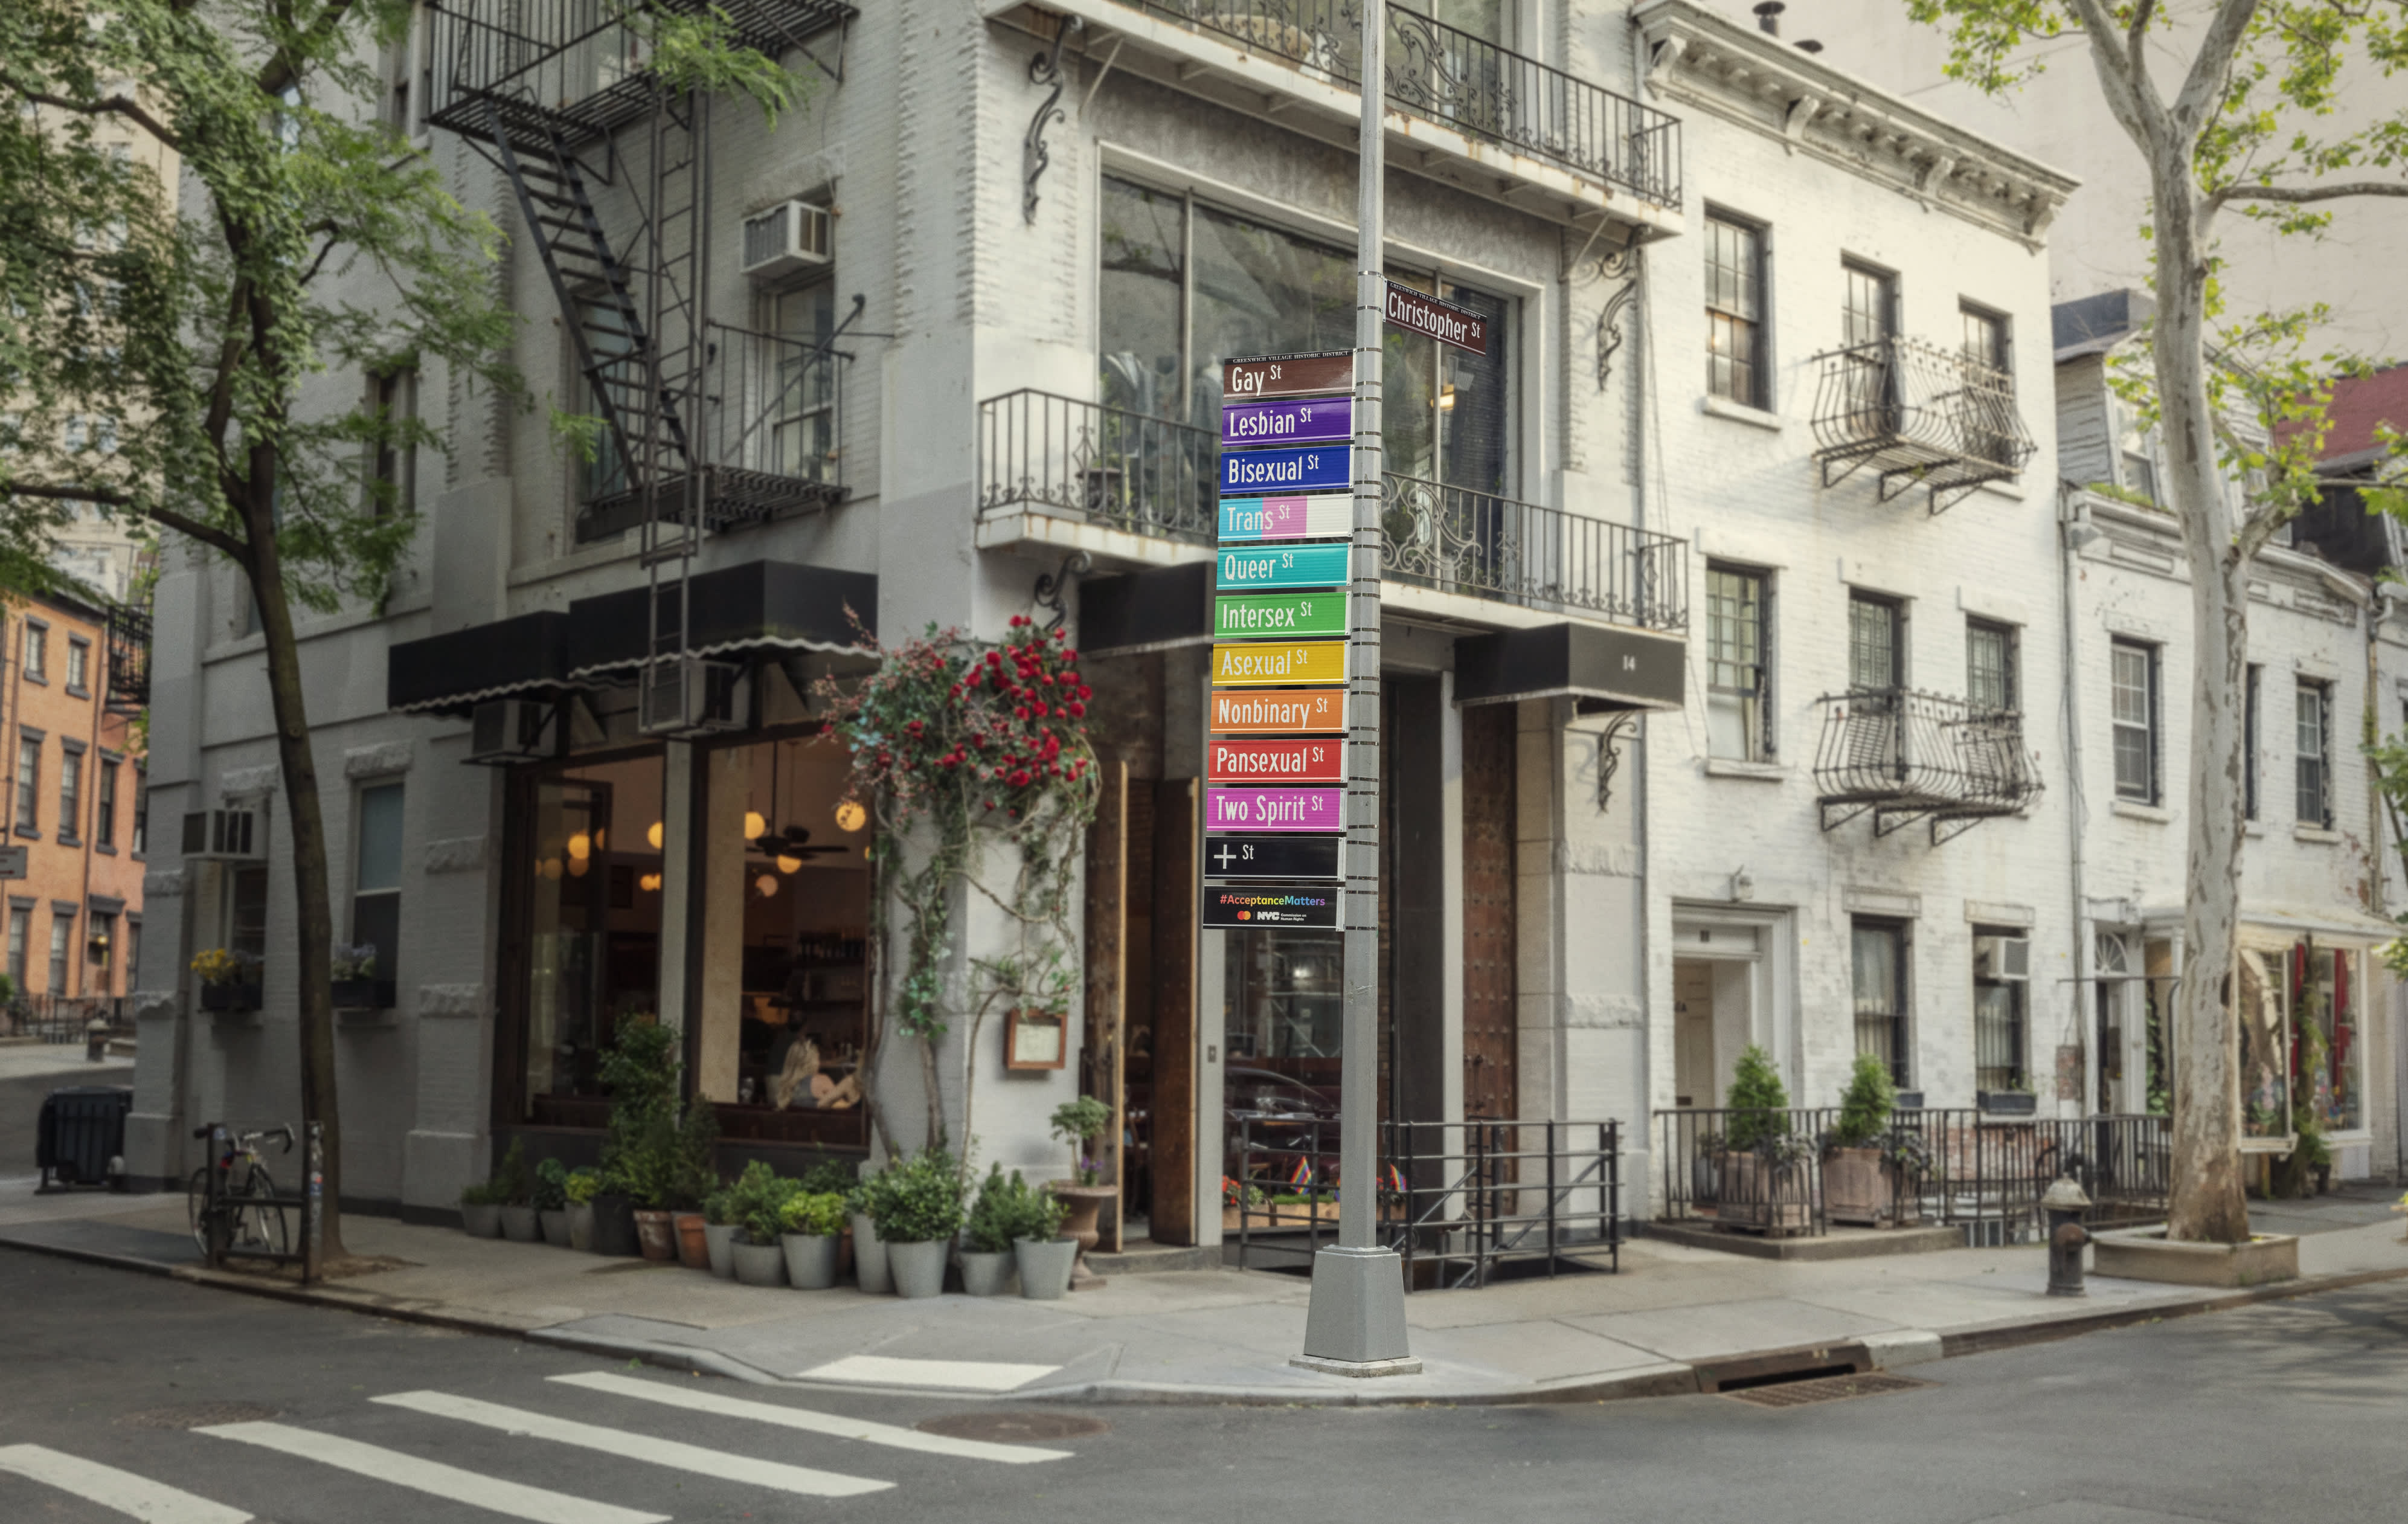 Mastercard launches True Name card to help LGBTQ community